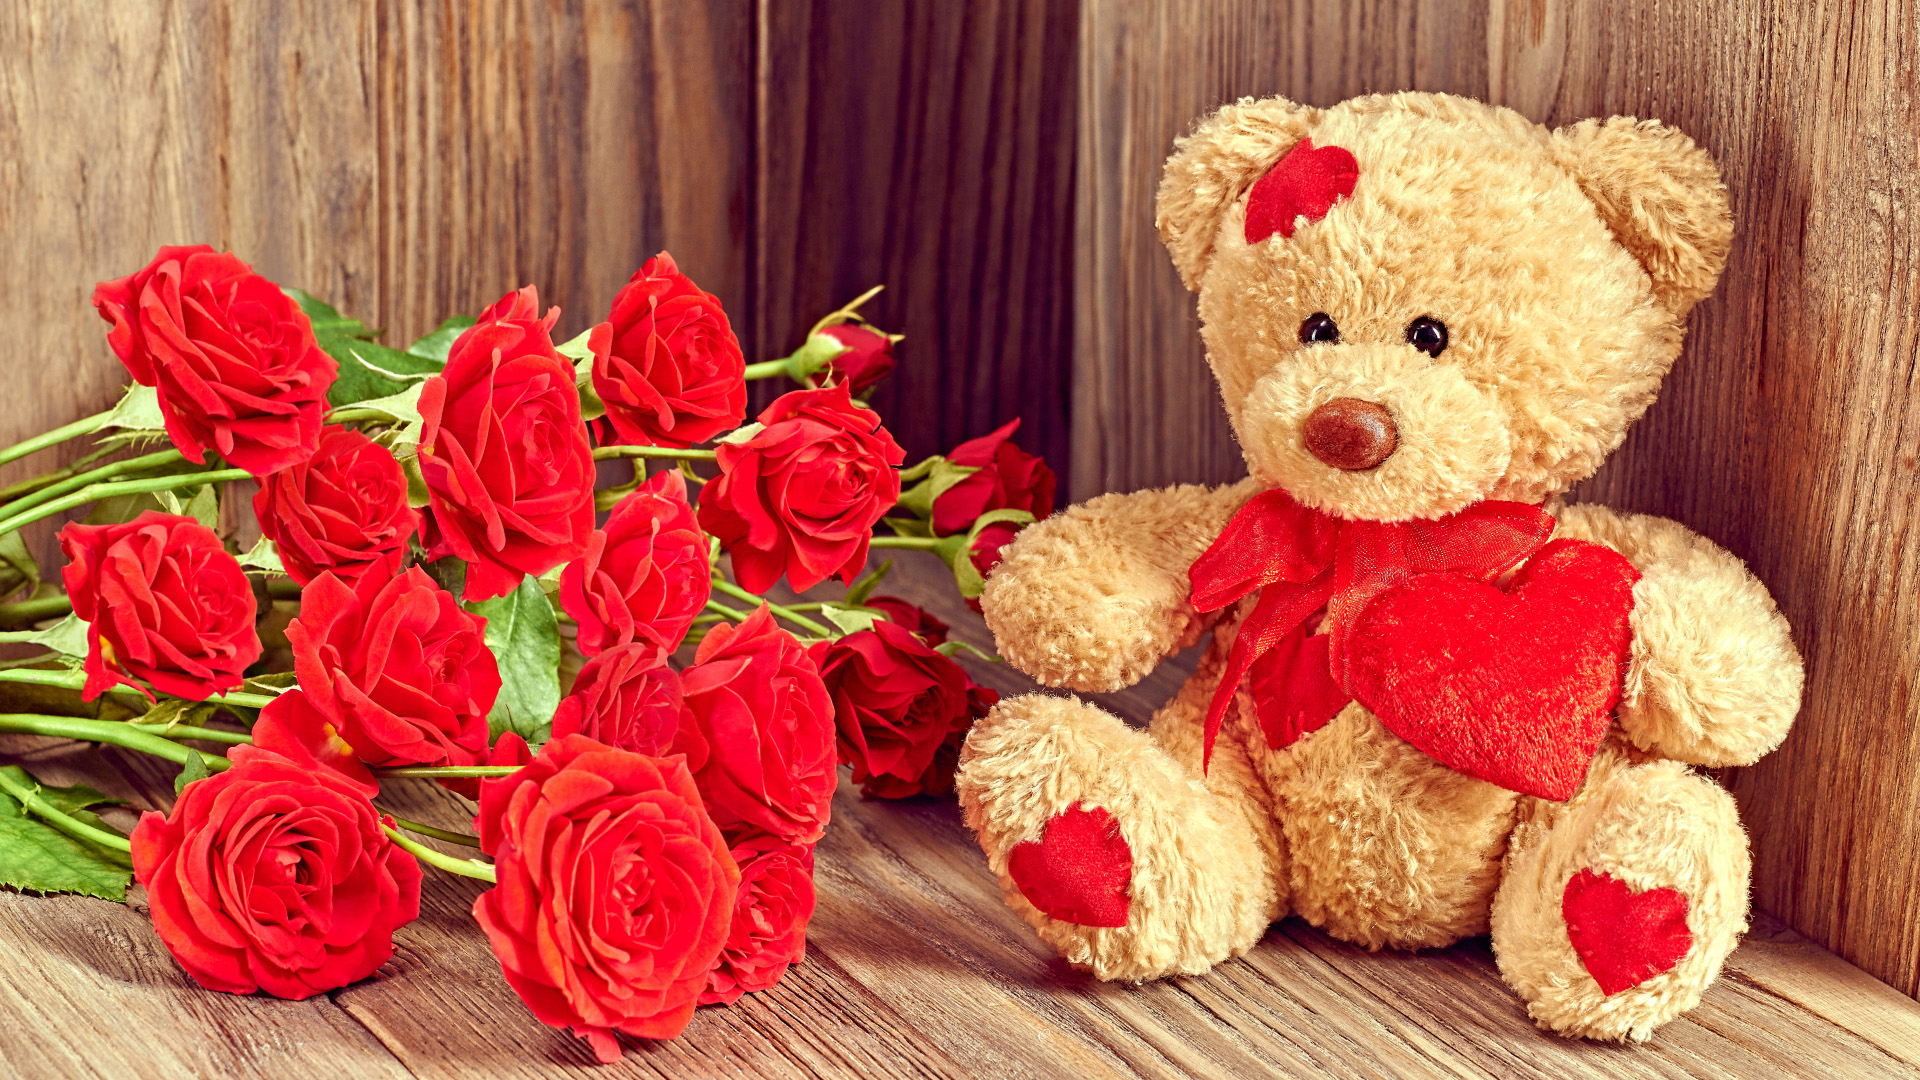 Cute And Romantic Wallpaper With Teddy Bear Images